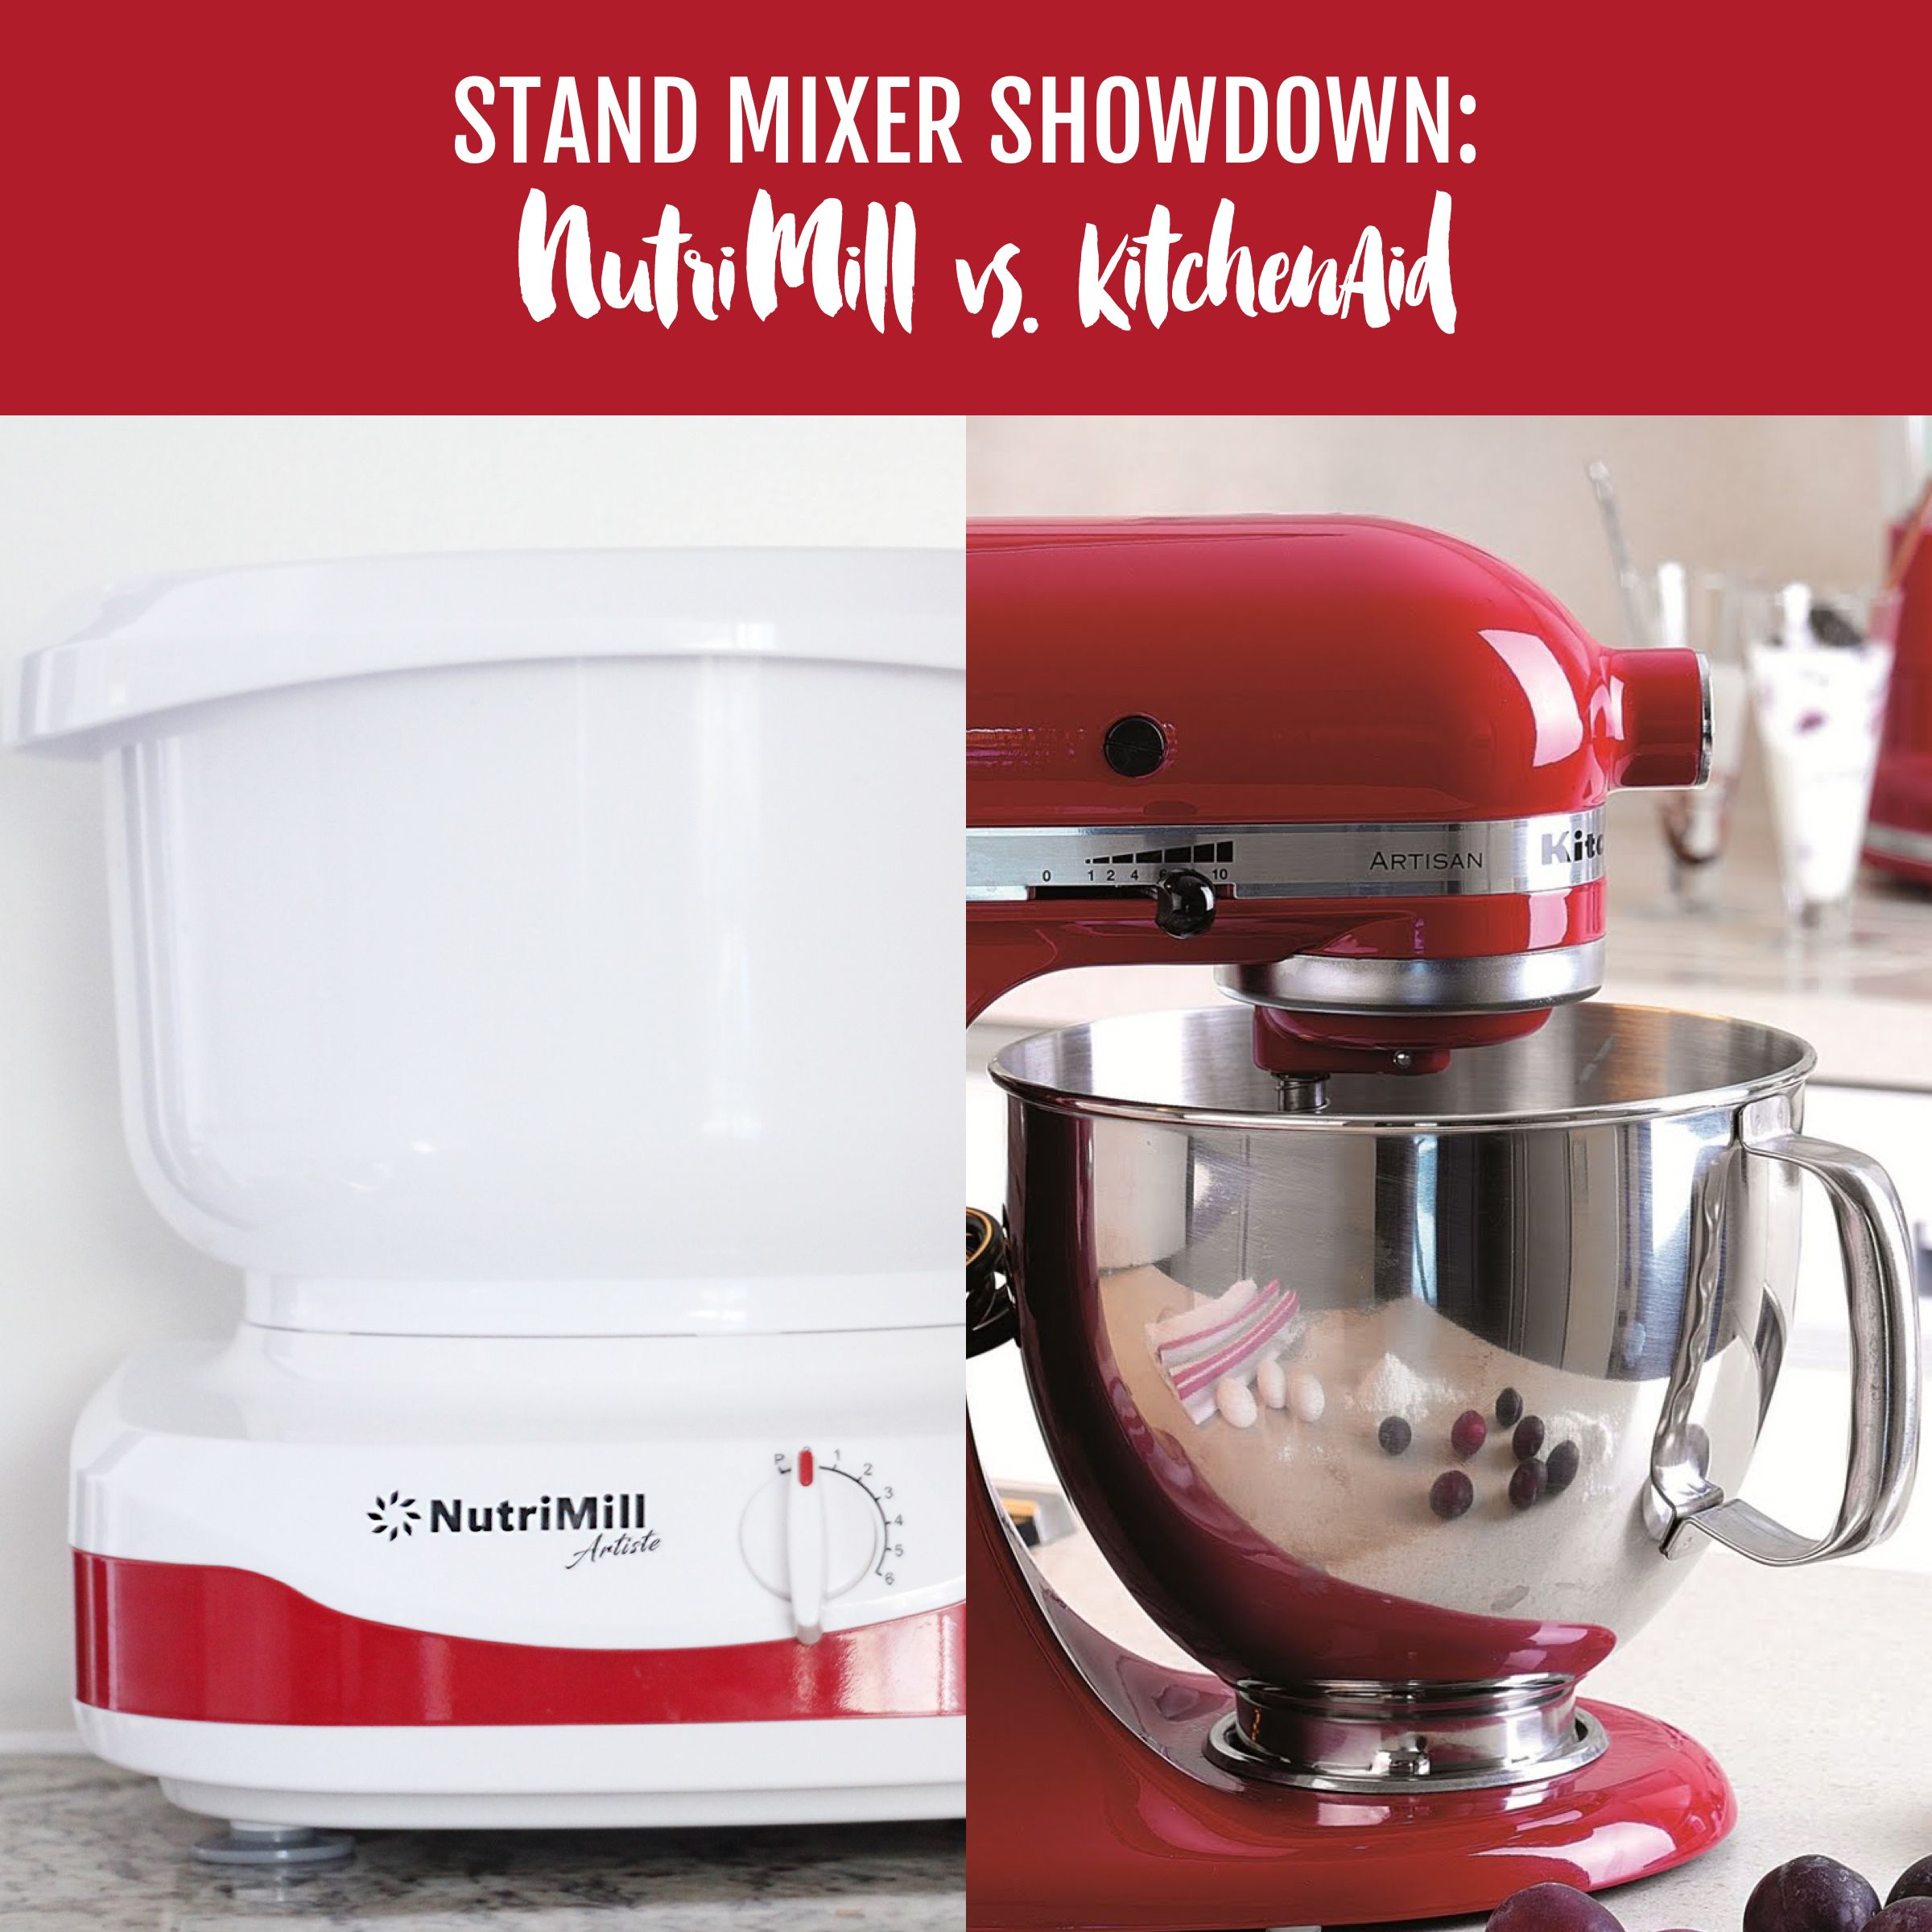 She Puts Nutrimill Versus Kitchenaid To The Test To Show You Which